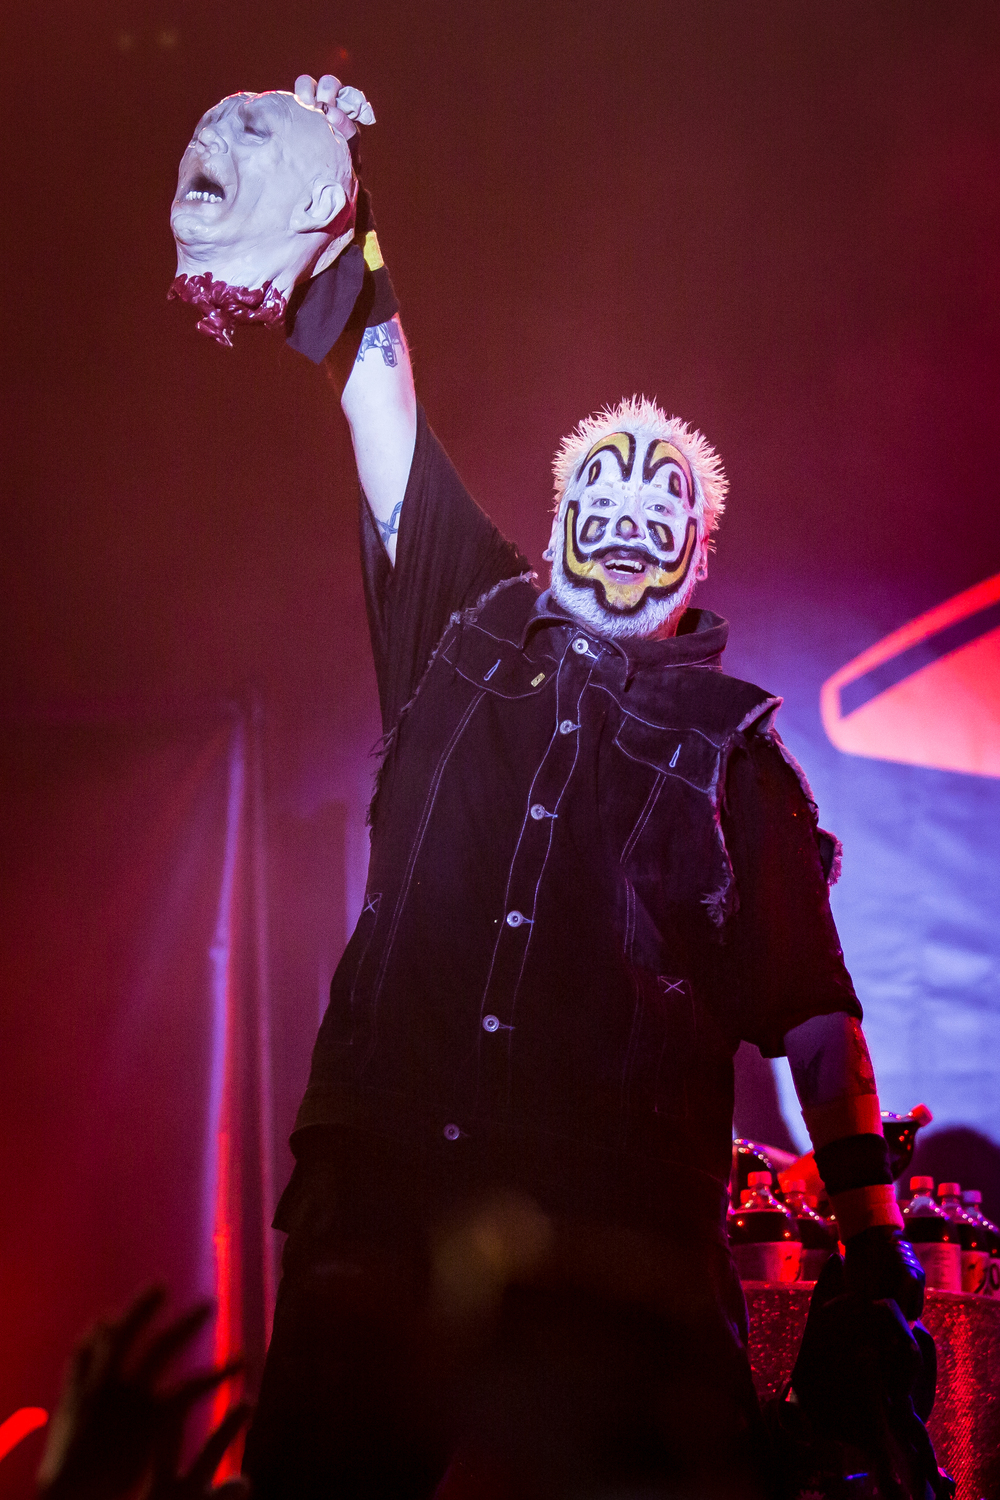 juggalo day 2016 in detroit-2361.jpg